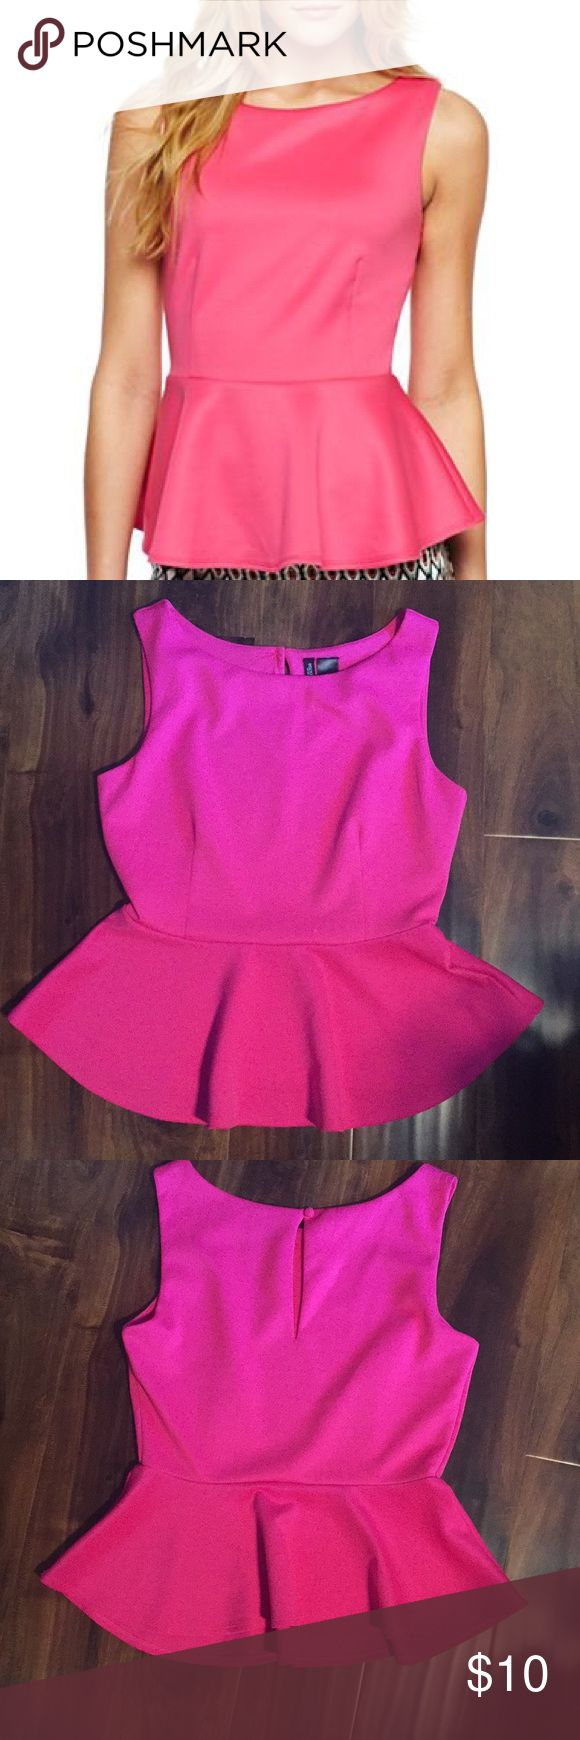 Hot pink peplum top Hot pink peplum top with keyhole back - small white mark as pictured Bisou Bisou Tops Blouses